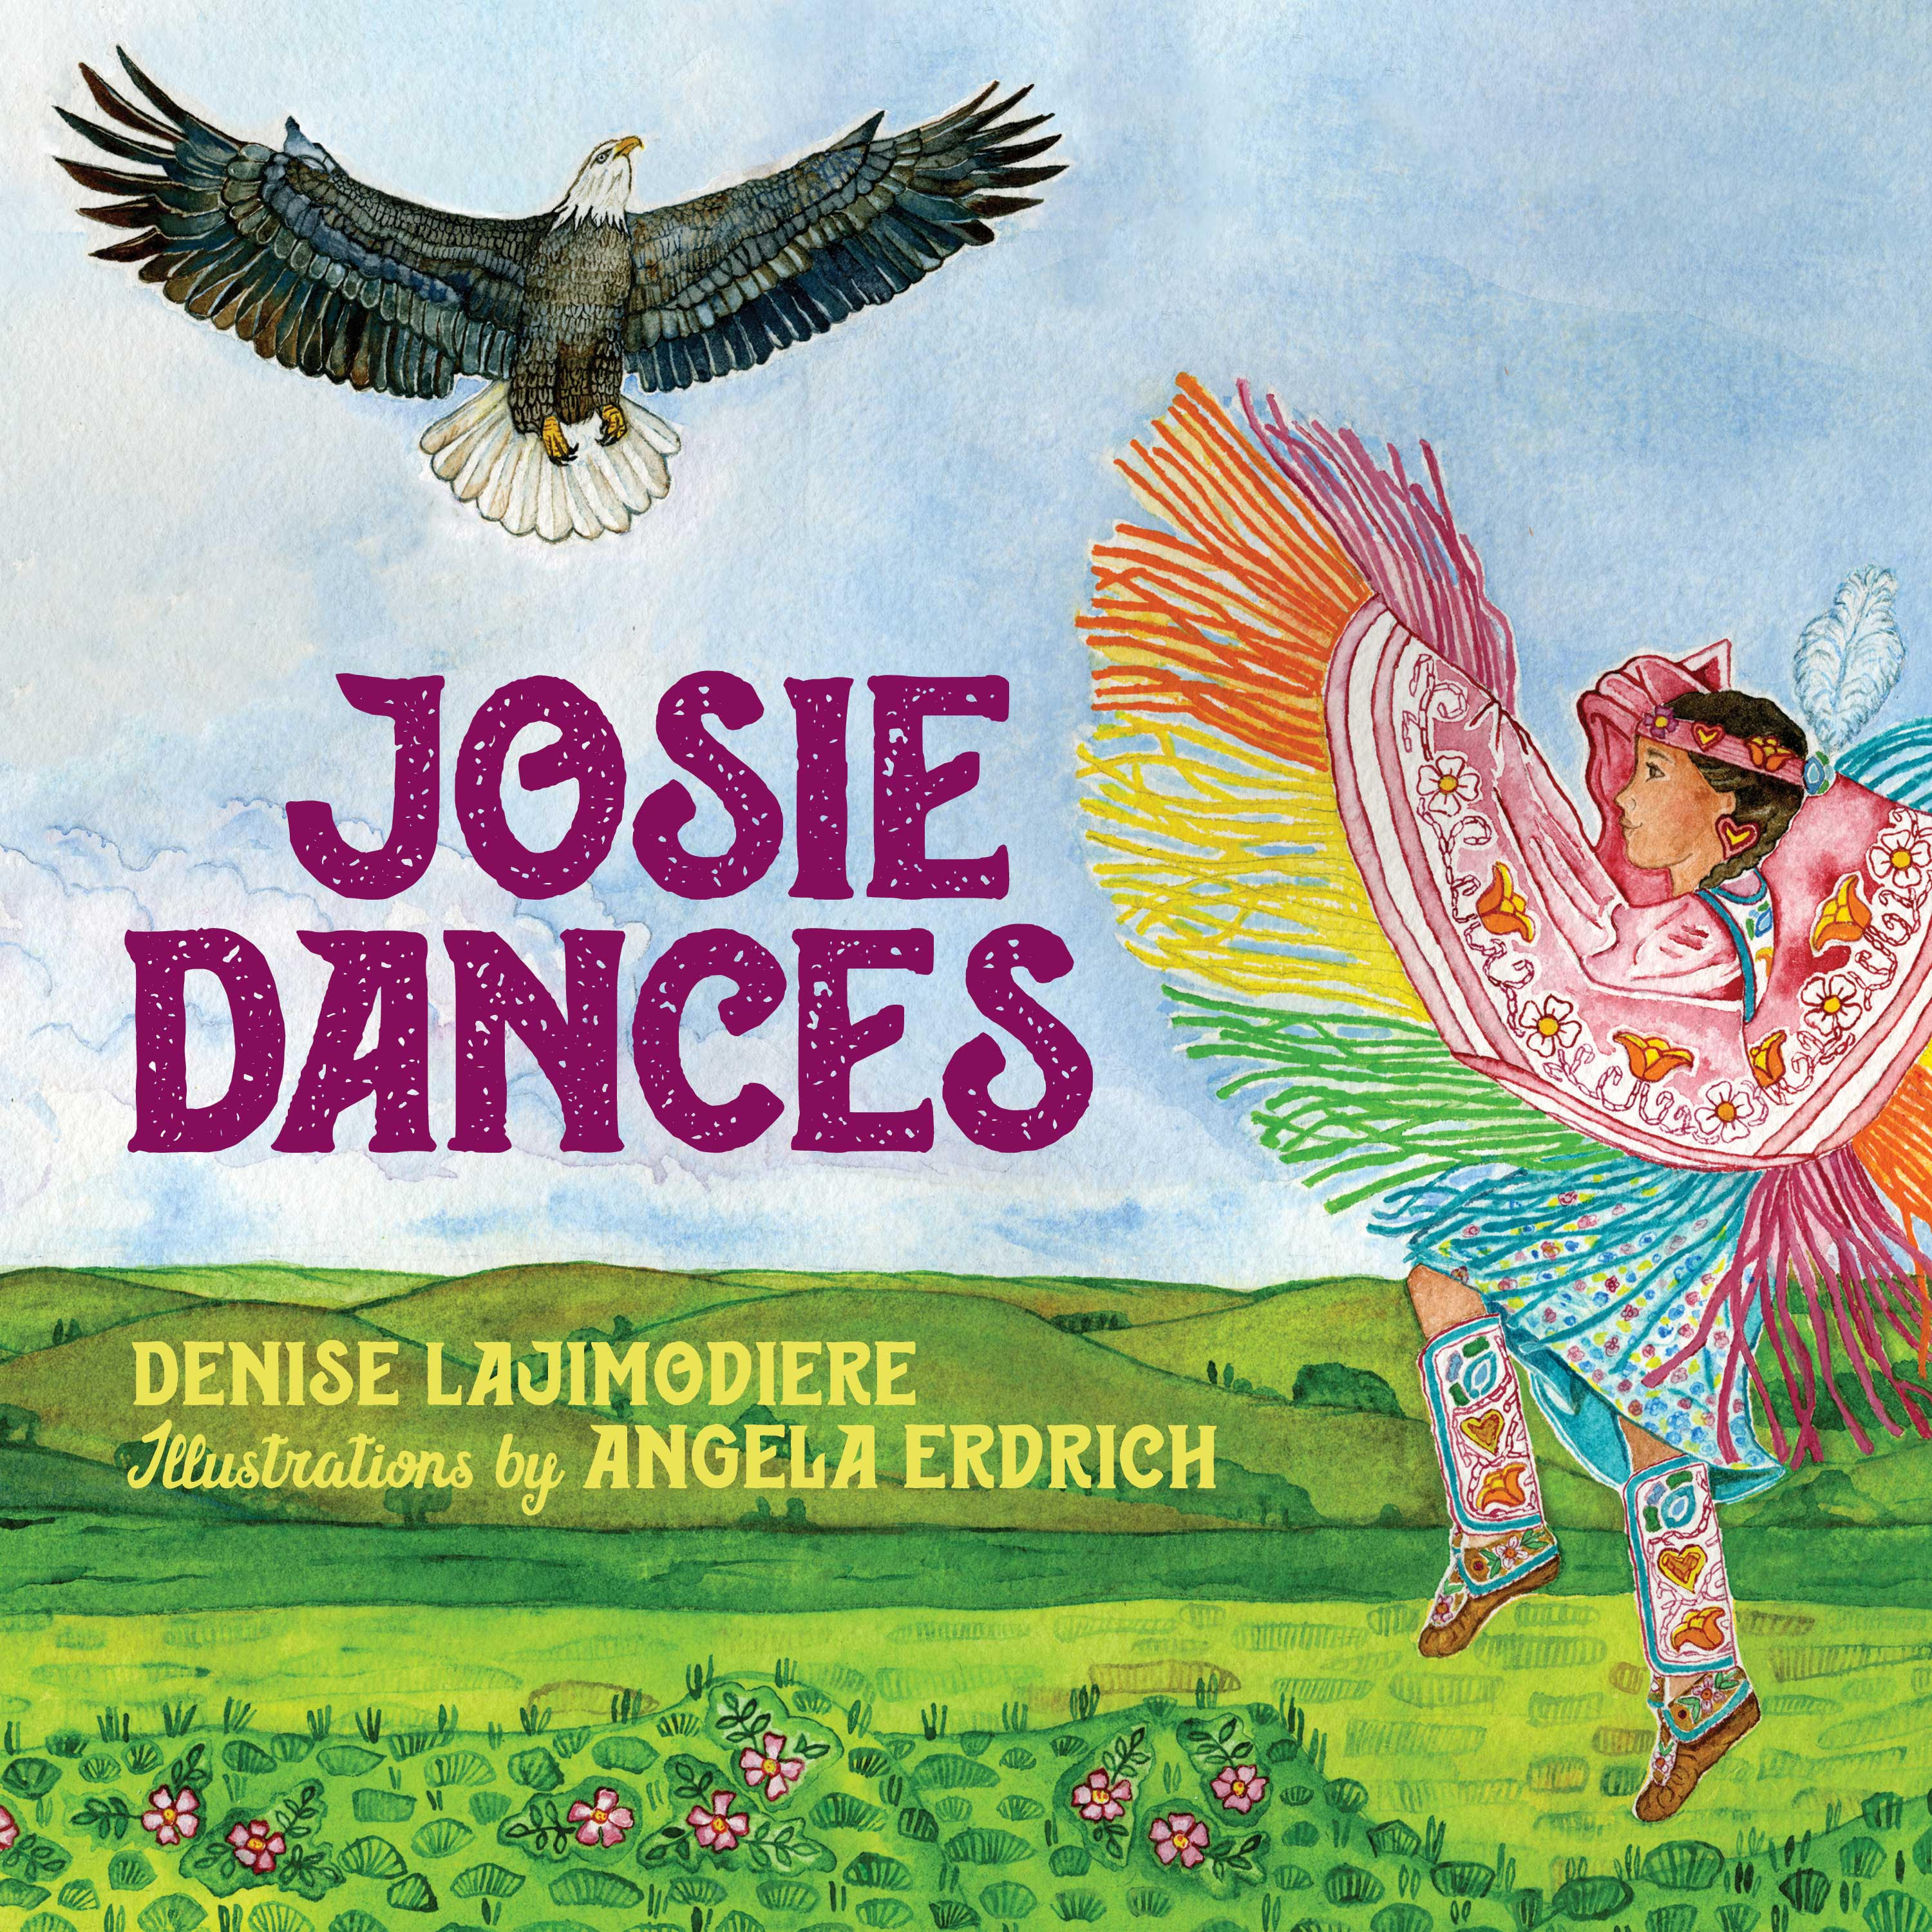 An Ojibwe girl practices her dance steps, gets help from her family, and is inspired by the soaring flight of Migizi, the eagle, as she prepares for her first powwow. Josie dreams of dancing at next summer's powwow. But first she needs many special things: a dress, a shawl, a cape, leggings, moccasins, and, perhaps most important of all, her spirit name. To gather all these essential pieces, she calls on her mom, her aunty, her kookum, and GrandmaGreatwalker. They have the skills to prepare Josie for her powwow debut. As the months go by, Josie practices her dance steps while Mom stitches, Aunty and Kookum bead, and GrandmaGreatwalkerdreams Josie's spirit name. Josie is nervous about her performance in the arena and about all the pieces falling into place, but she knows her family is there to support her. The powwow circle is a welcoming space, and dancers and spectators alike celebrate Josie's first dance. When she receives her name, she knows it's just right. Wrapped in the love of her community, Josie dances to honor her ancestors. In this Ojibwe girl's coming-of-age story, Denise Lajimodiere highlights her own daughter's experience at powwow. Elegant artwork by Angela Erdrich features not only Josie and her family but also the animals and seasons and heartbeat of Aki, Mother Earth, and the traditions that link Josie to generations past and yet to come. Denise Lajimodiereis a retired associate professor of educational leadership at North Dakota State University living in a cozy cottage by a lake on the Turtle Mountain Reservation. Fine artistAngela Erdrichis a pediatrician practicing in the Twin Cities. Both are citizens of the Turtle Mountain Band of Chippewa. Related Videos: Native American Artist-in-Residence: Denise Lajimodiere Artist in the Gallery: A Conversation with Denise Lajimodiere Available May 2021 from Minnesota Historical Society Press $16.95 hardcover, ISBN: 978-1-68134-207-8 32 pages,10 x 10 inches,Fully Illustrated, Glossary, Ages 3-7